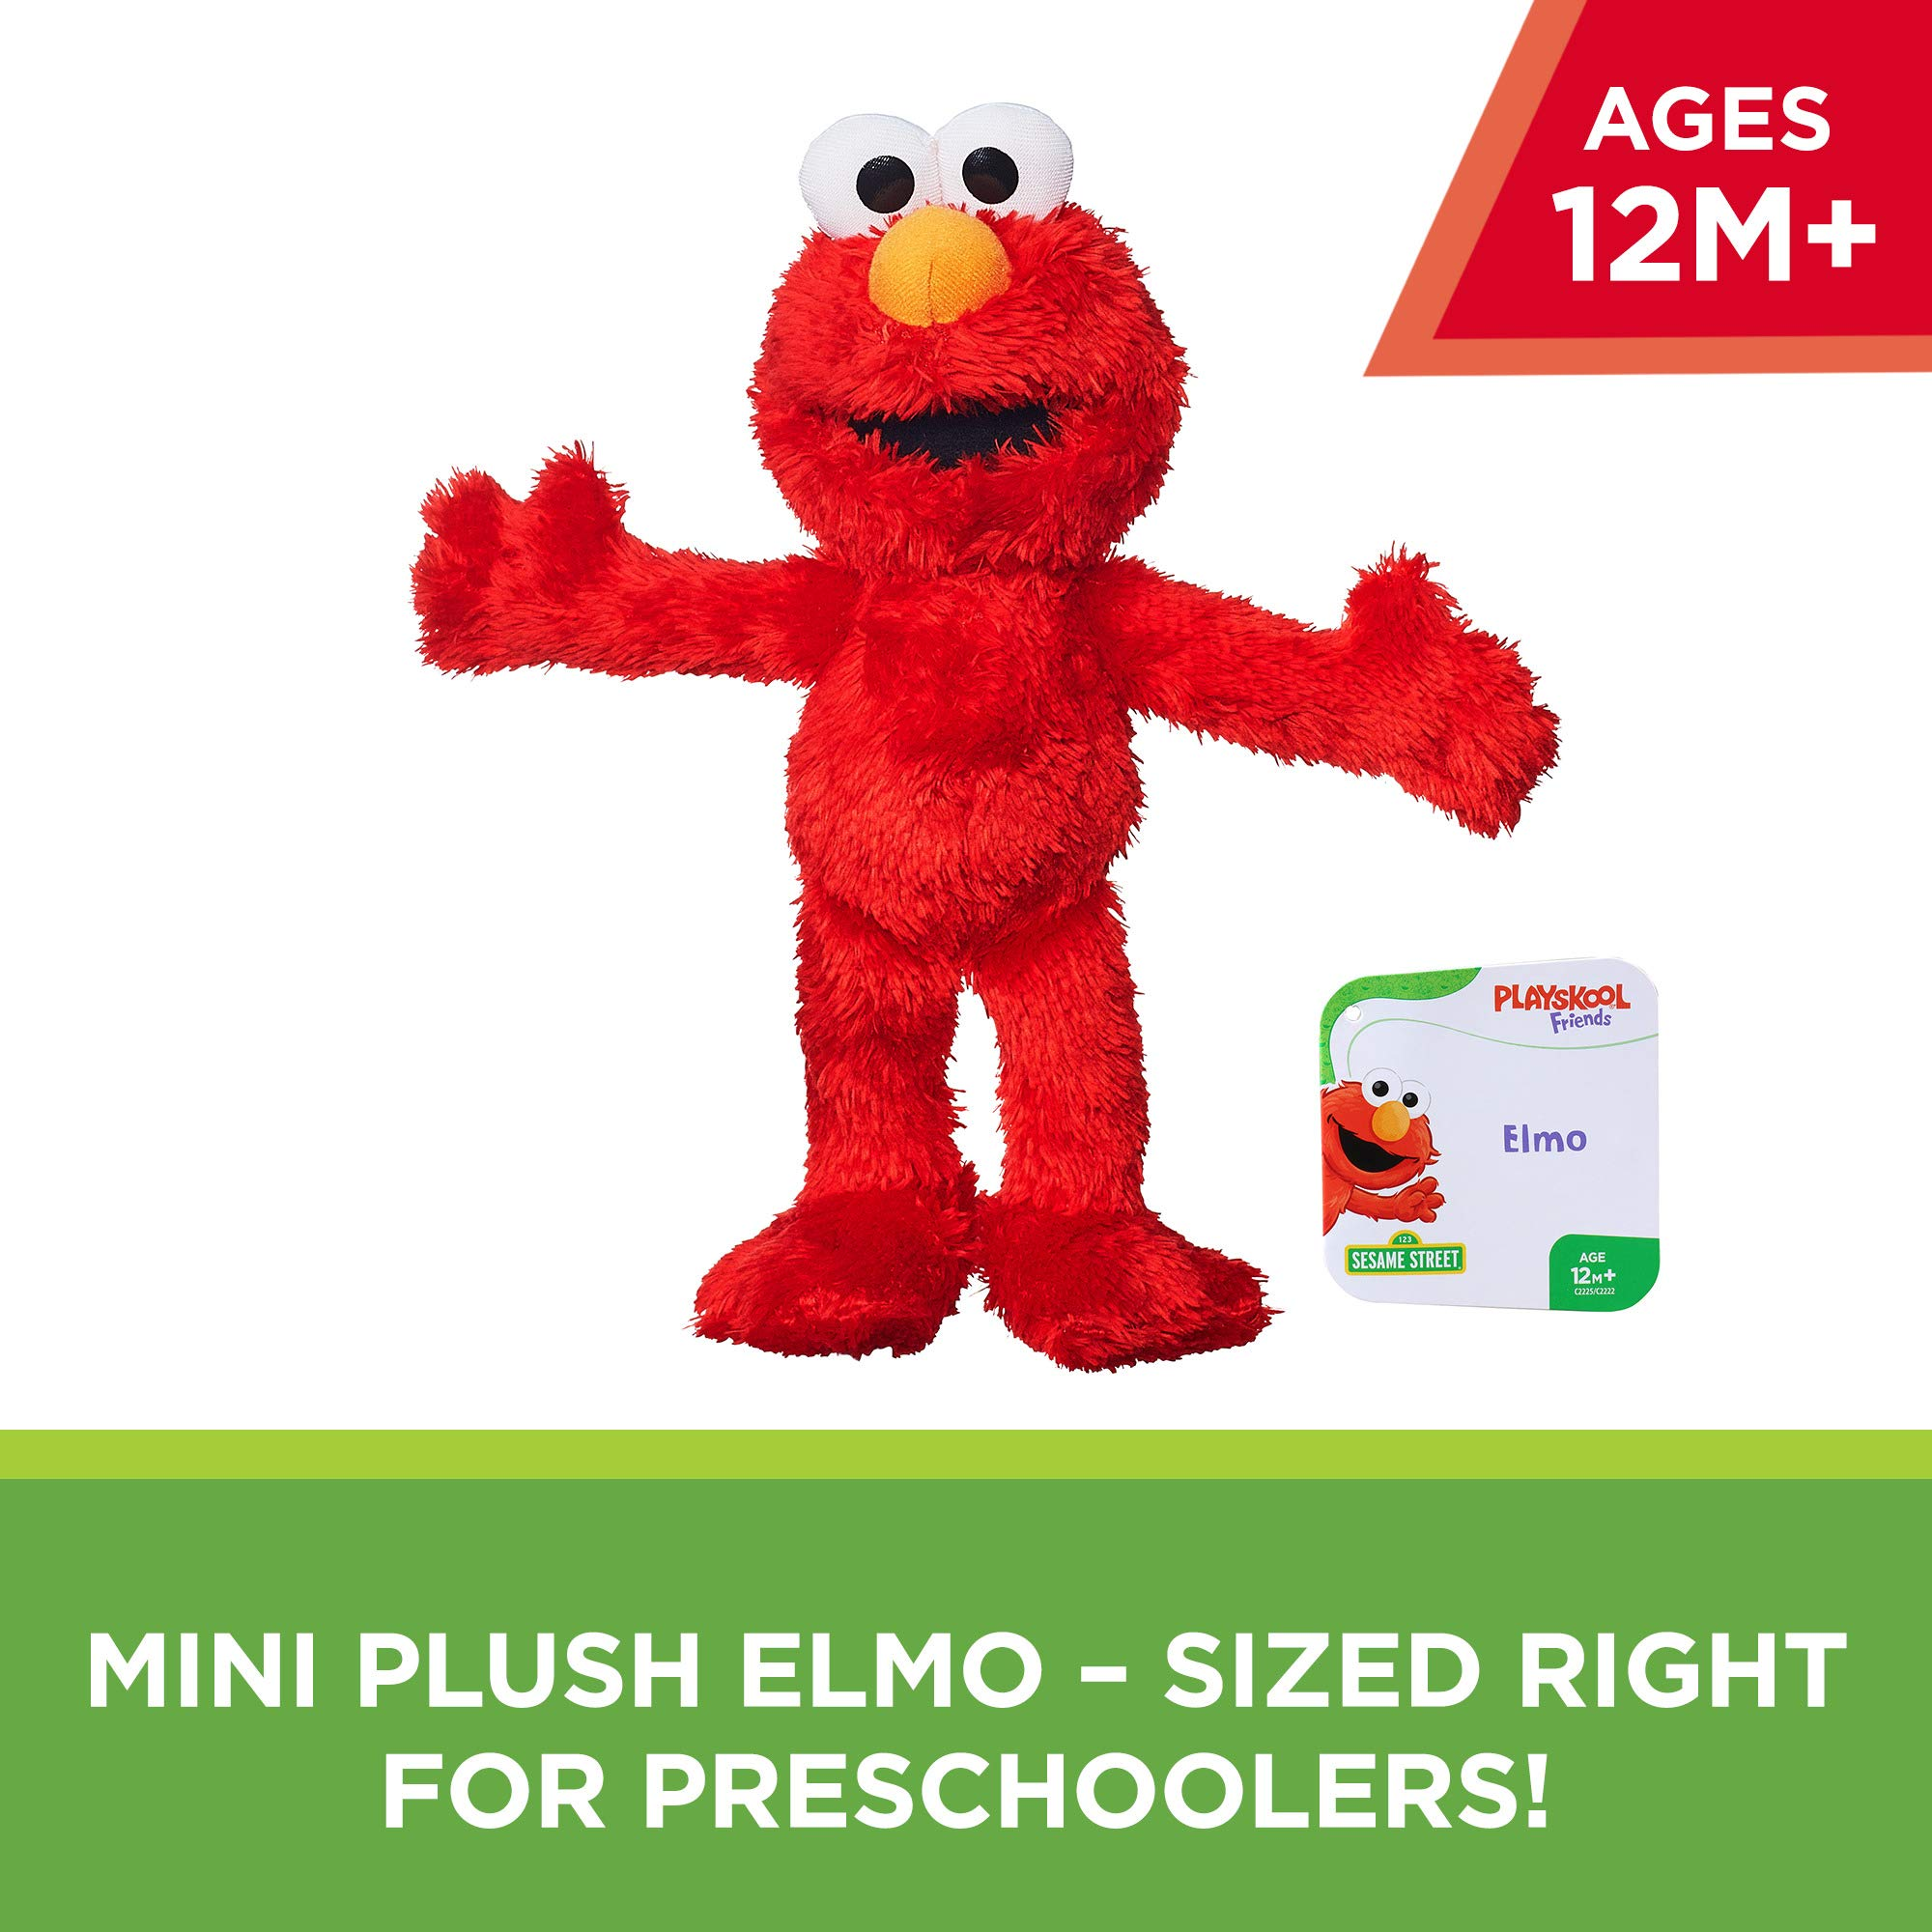 Elmo Toy for Kids 1 Year Old /& Up Sesame Street Lets Cuddle Elmo Plush Doll: 10 Elmo Toy Exclusive Great for Snuggles Soft /& Cuddly